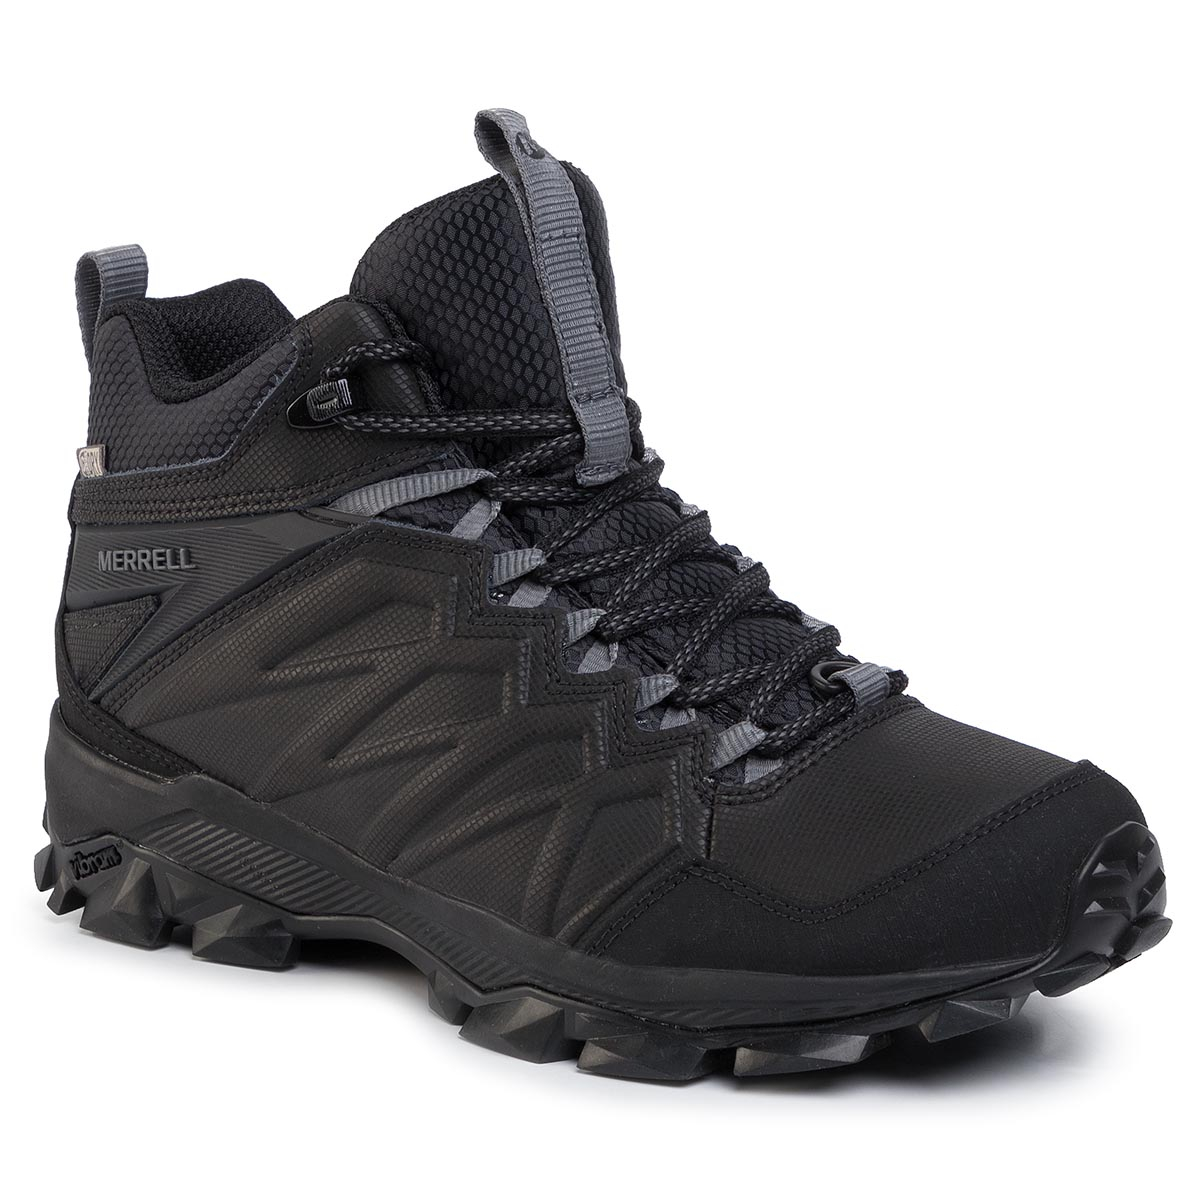 Trekkings Merrell - Thermo Freeze Mid Wp J85887 Black imagine epantofi.ro 2021